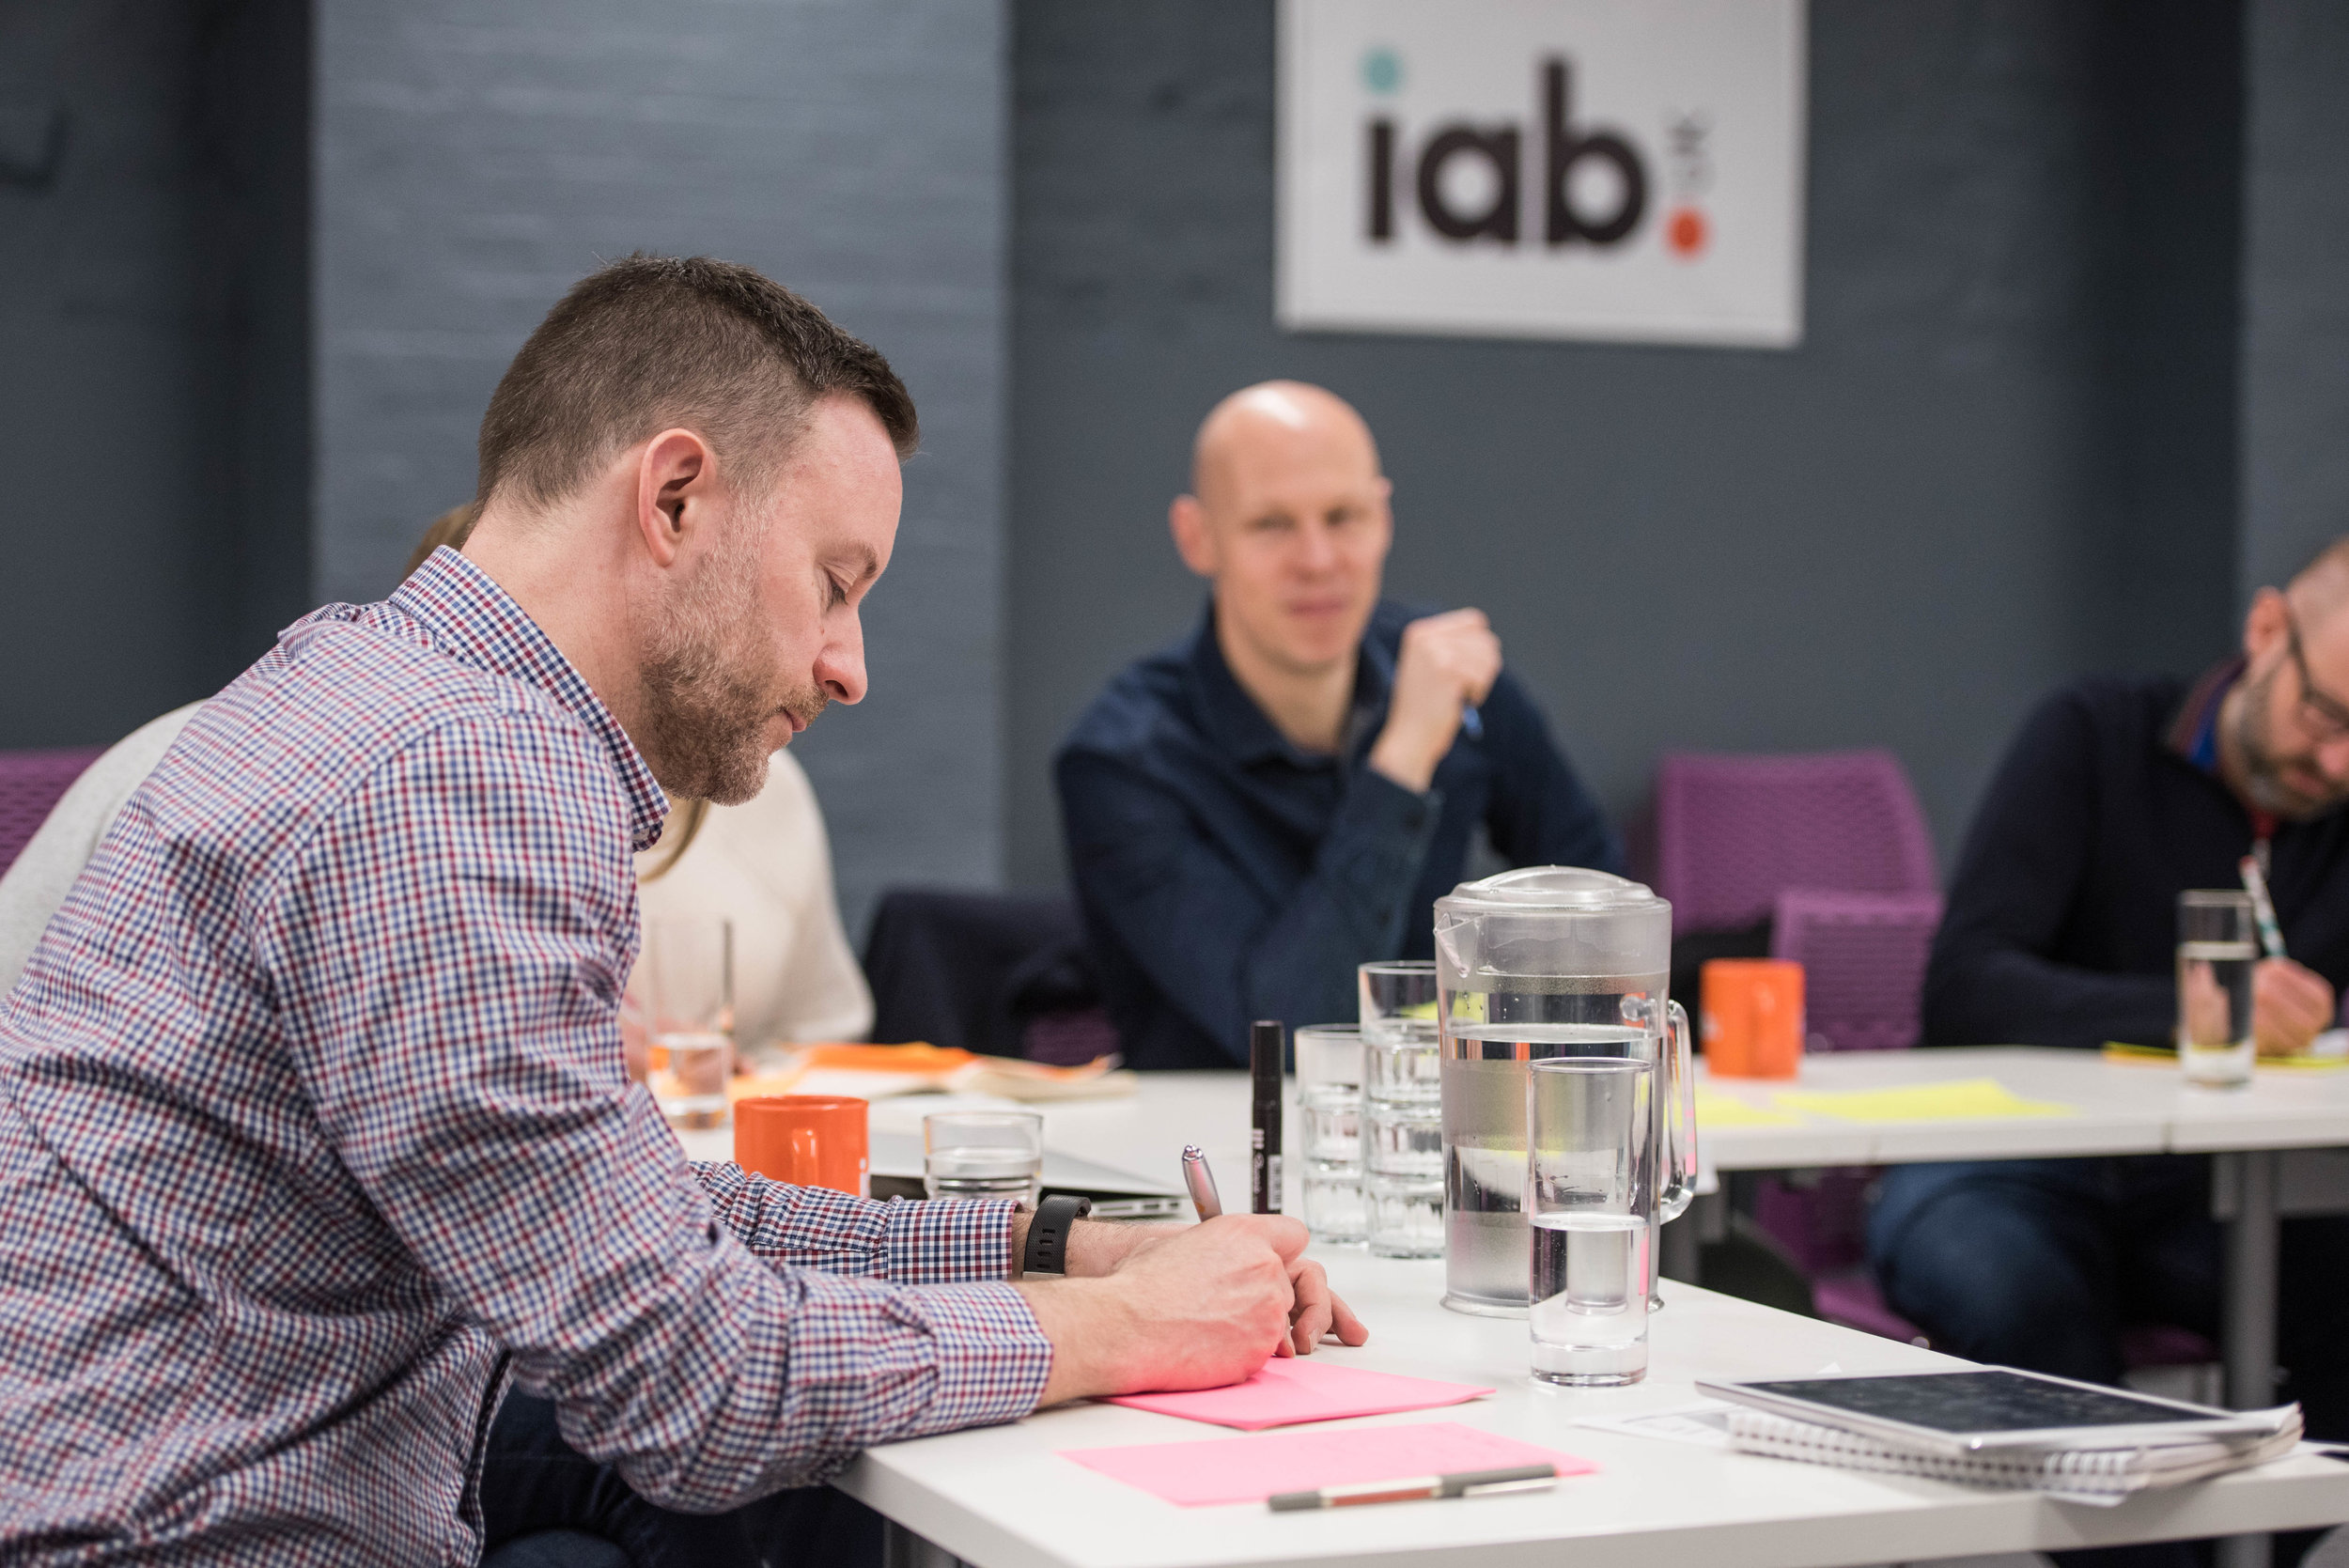 IAB Uk_Incidental Shots_SM (173 of 312).jpg